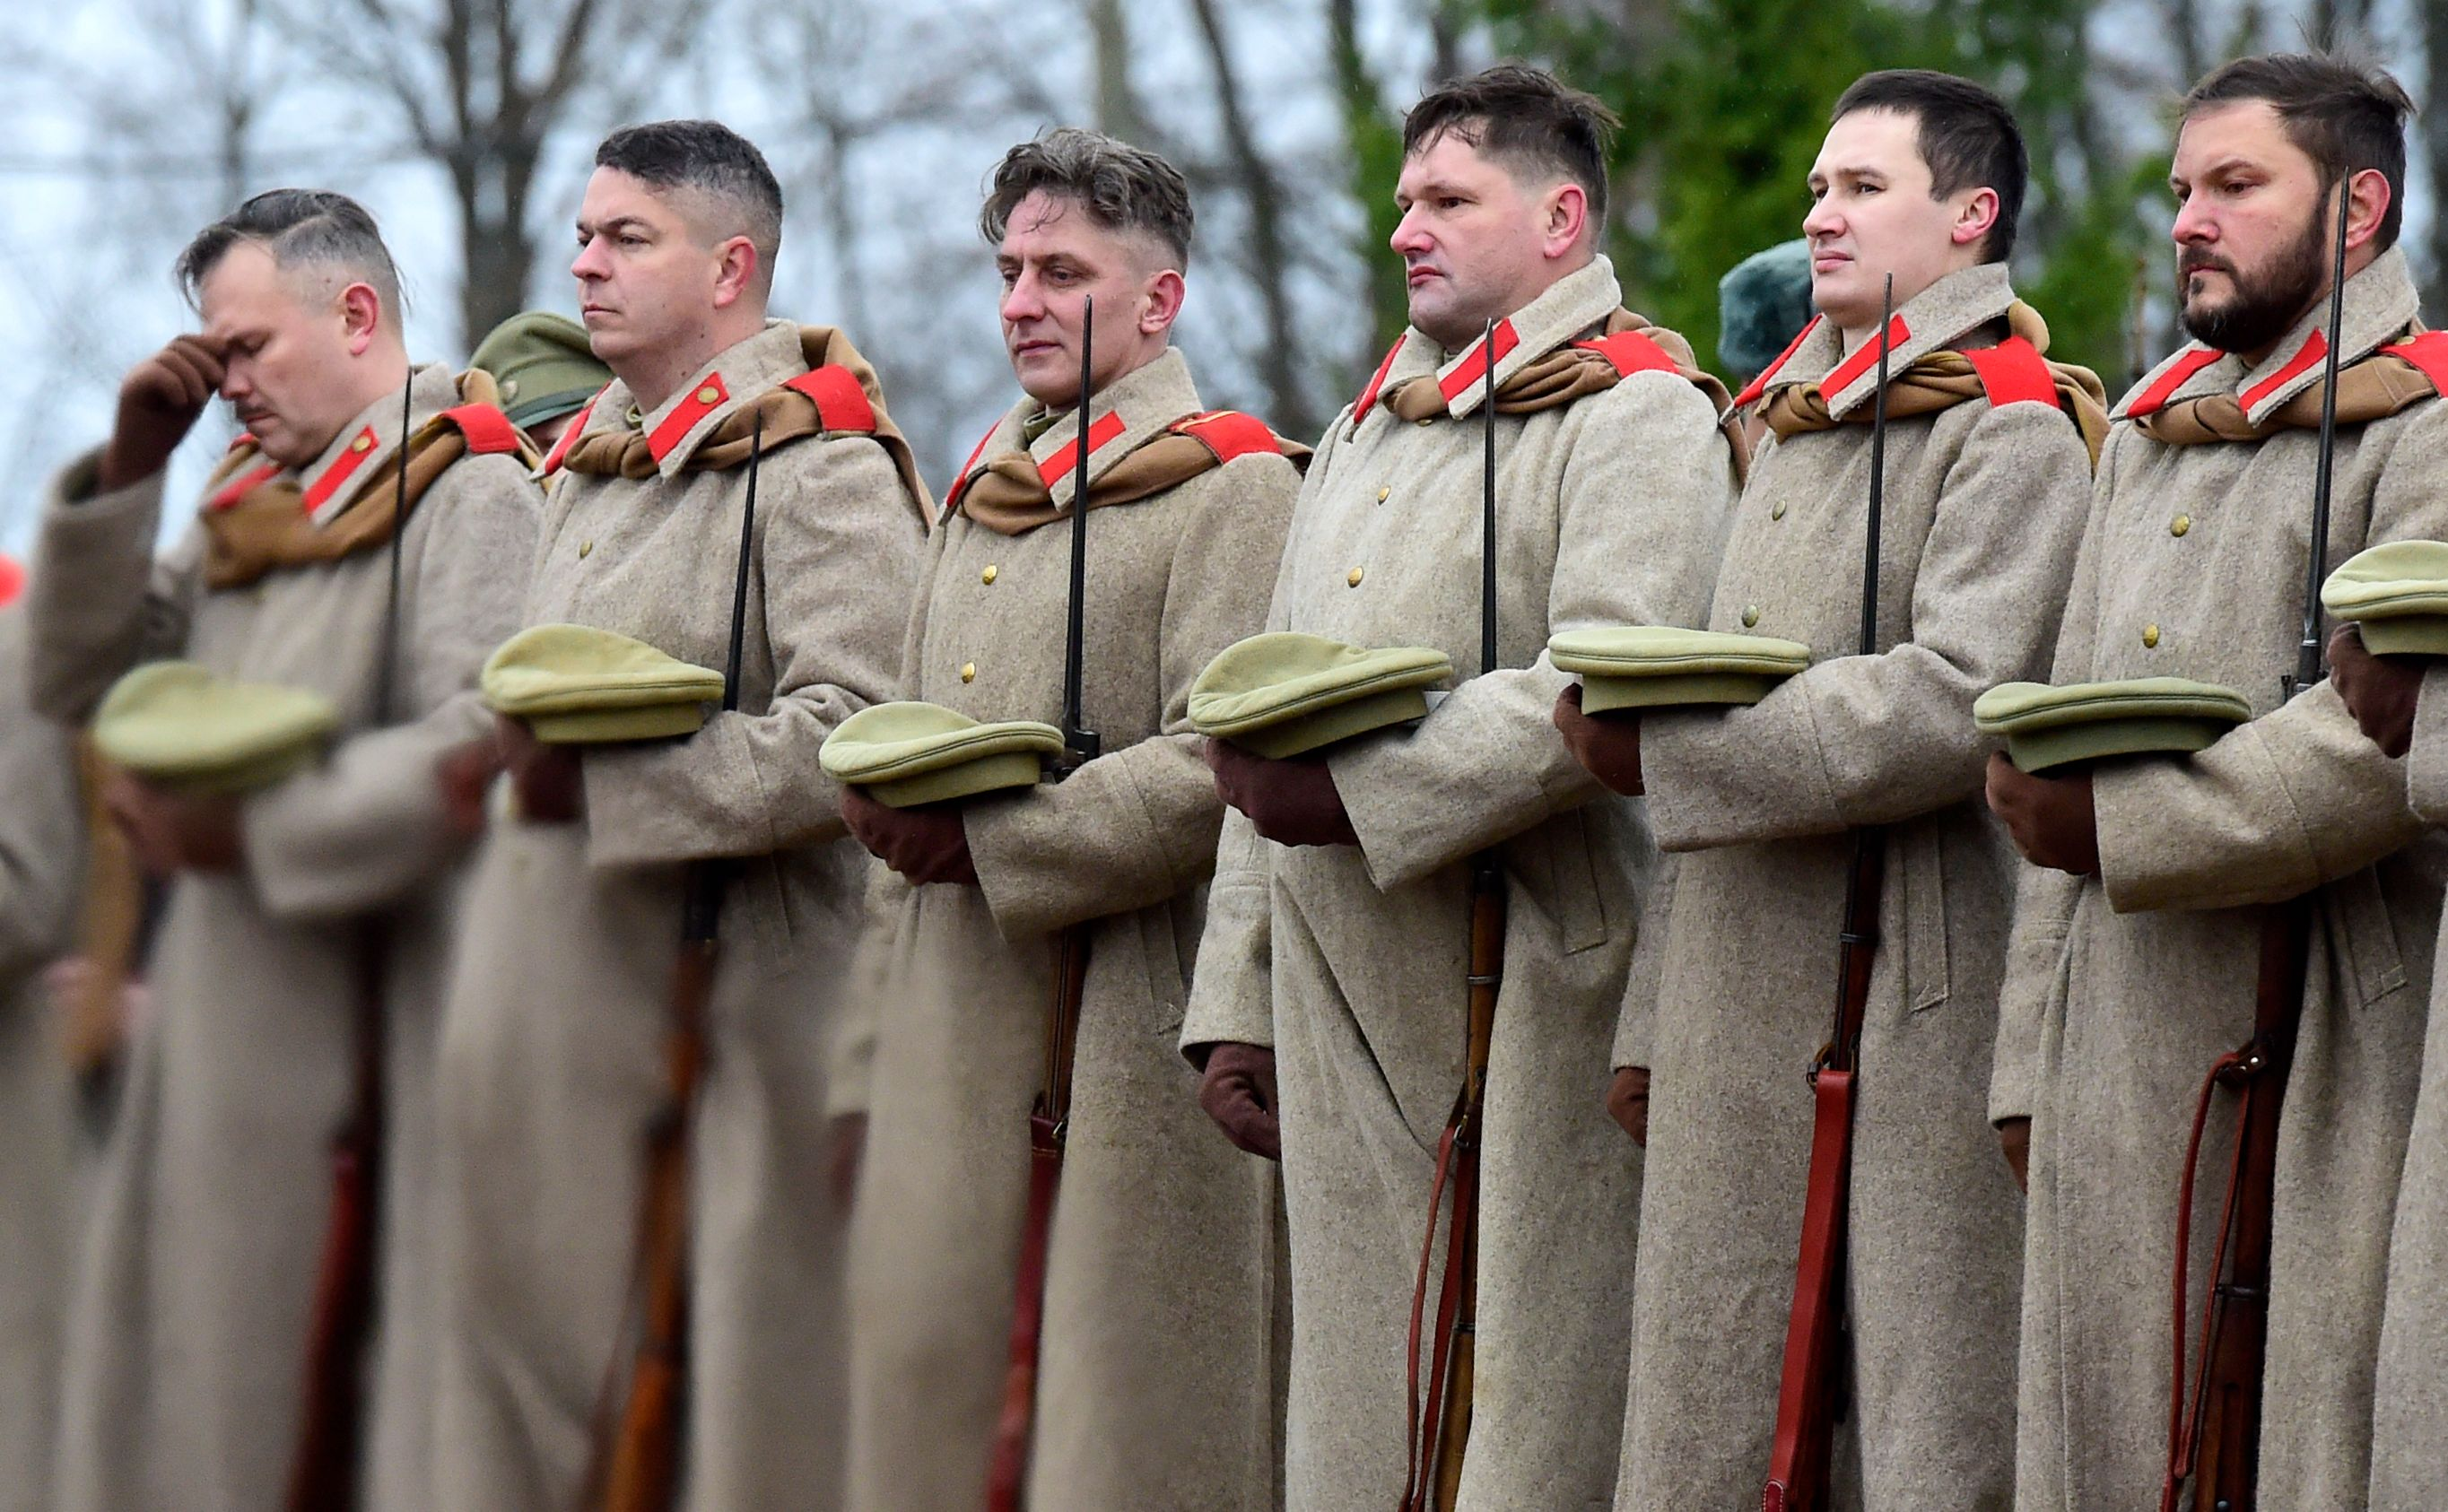 Members of a military history club wearing World War I uniforms attend a ceremony outside Saint Petersburg.